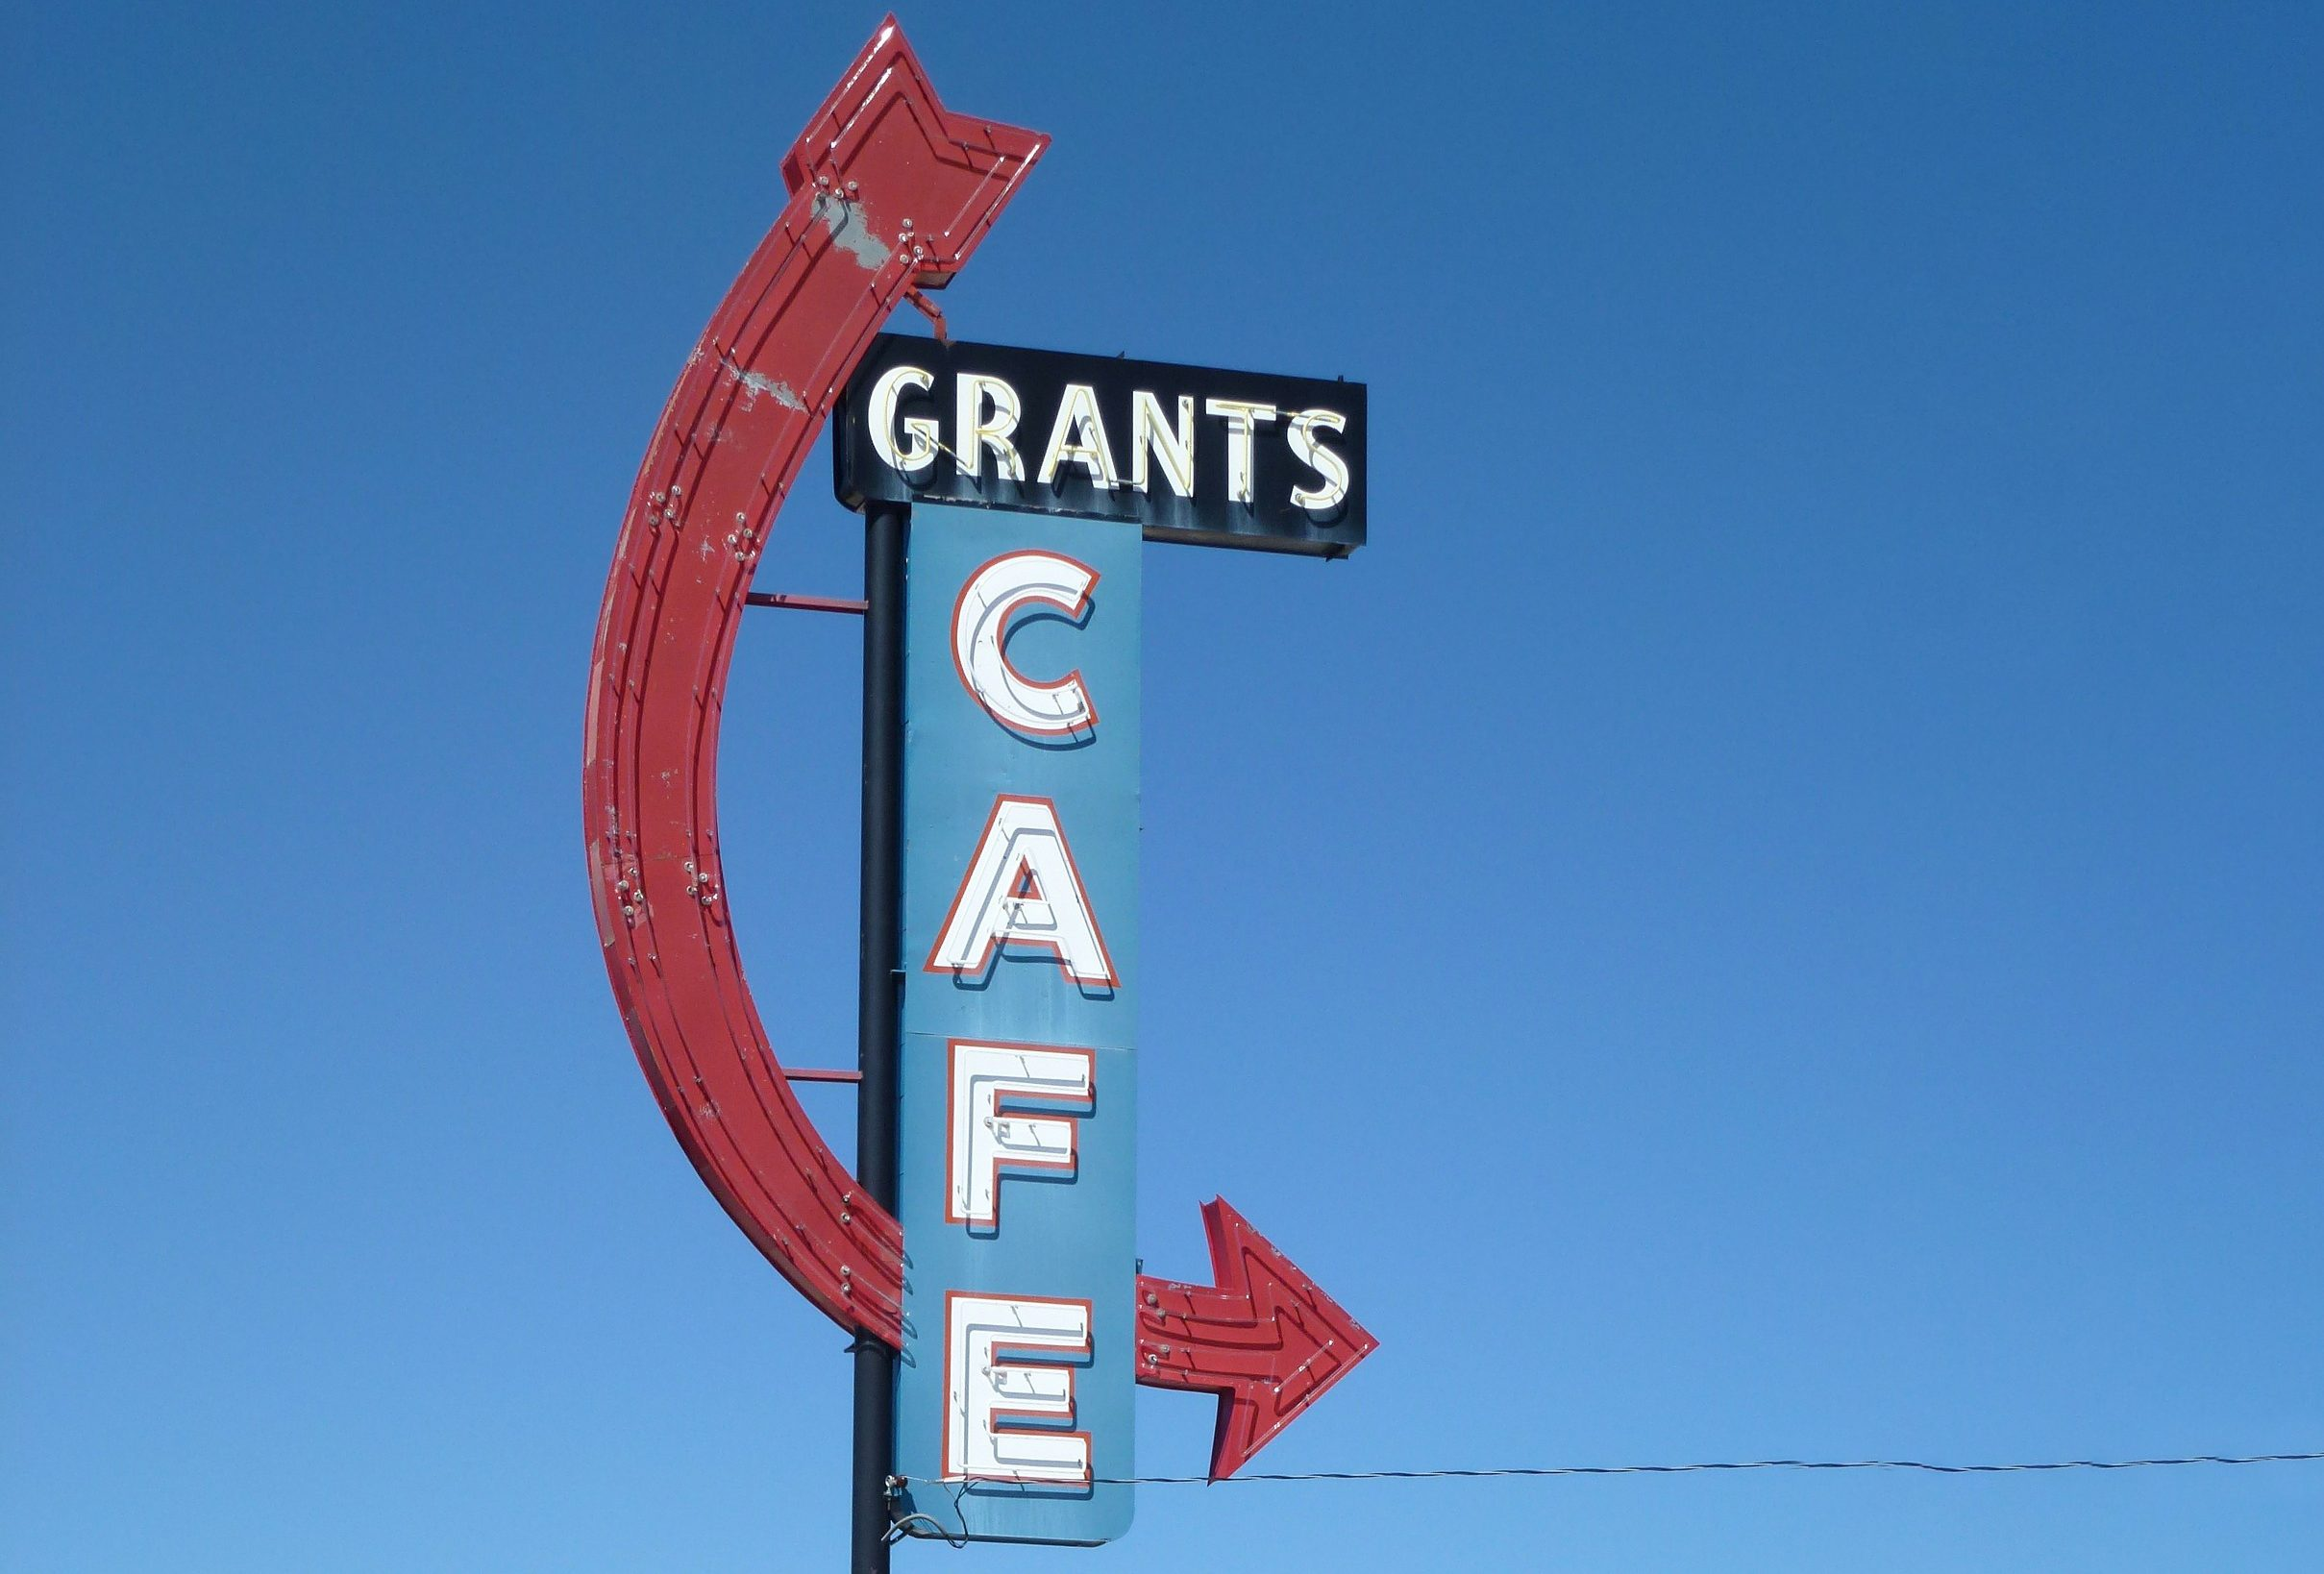 A 50s-style sign pointing out the location of a cafe.